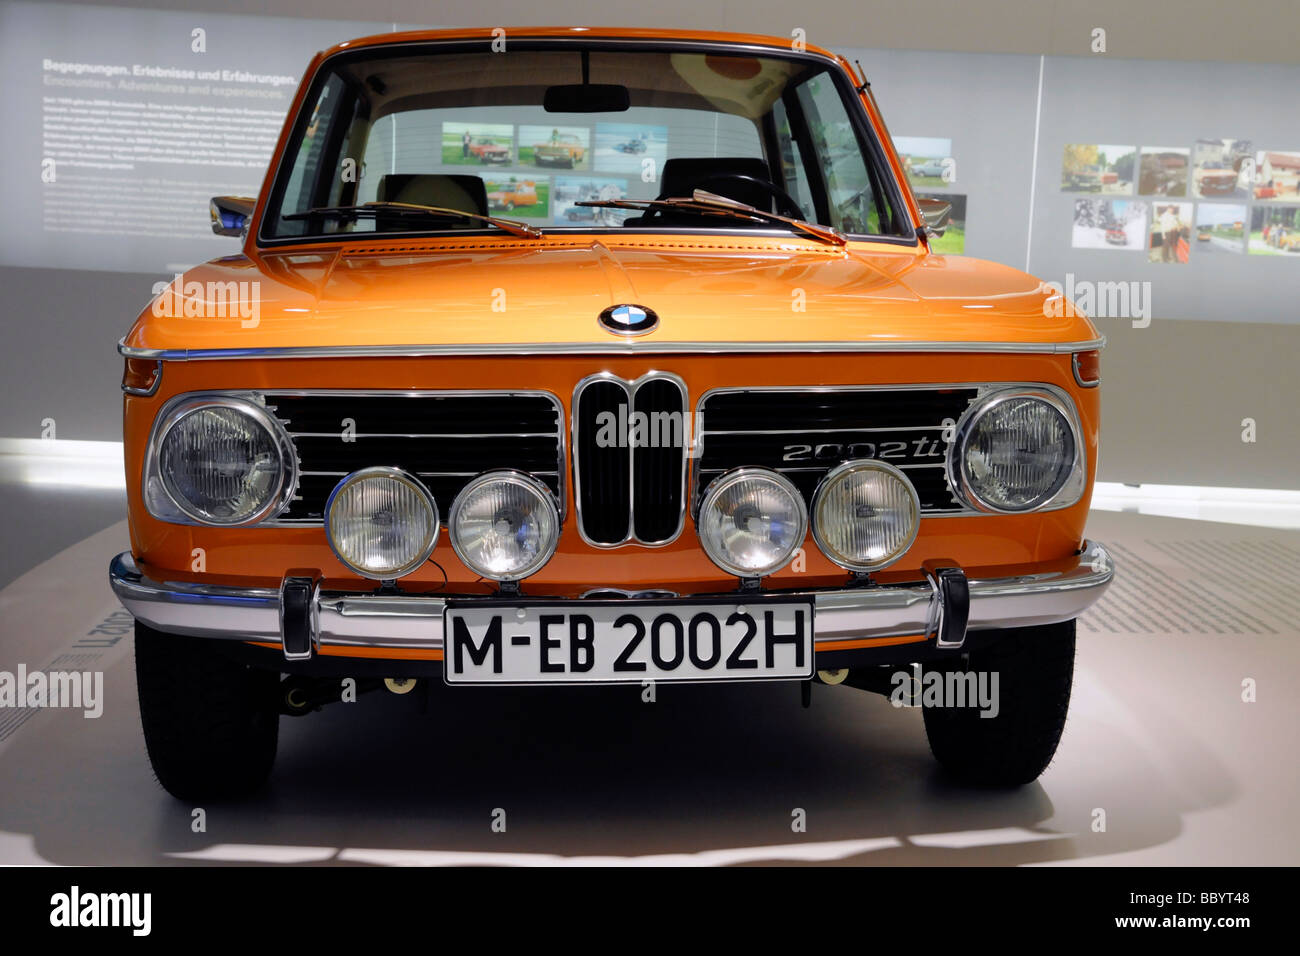 bmw 2002 ti bmw museum munich bavaria germany europe stock photo royalty free image. Black Bedroom Furniture Sets. Home Design Ideas